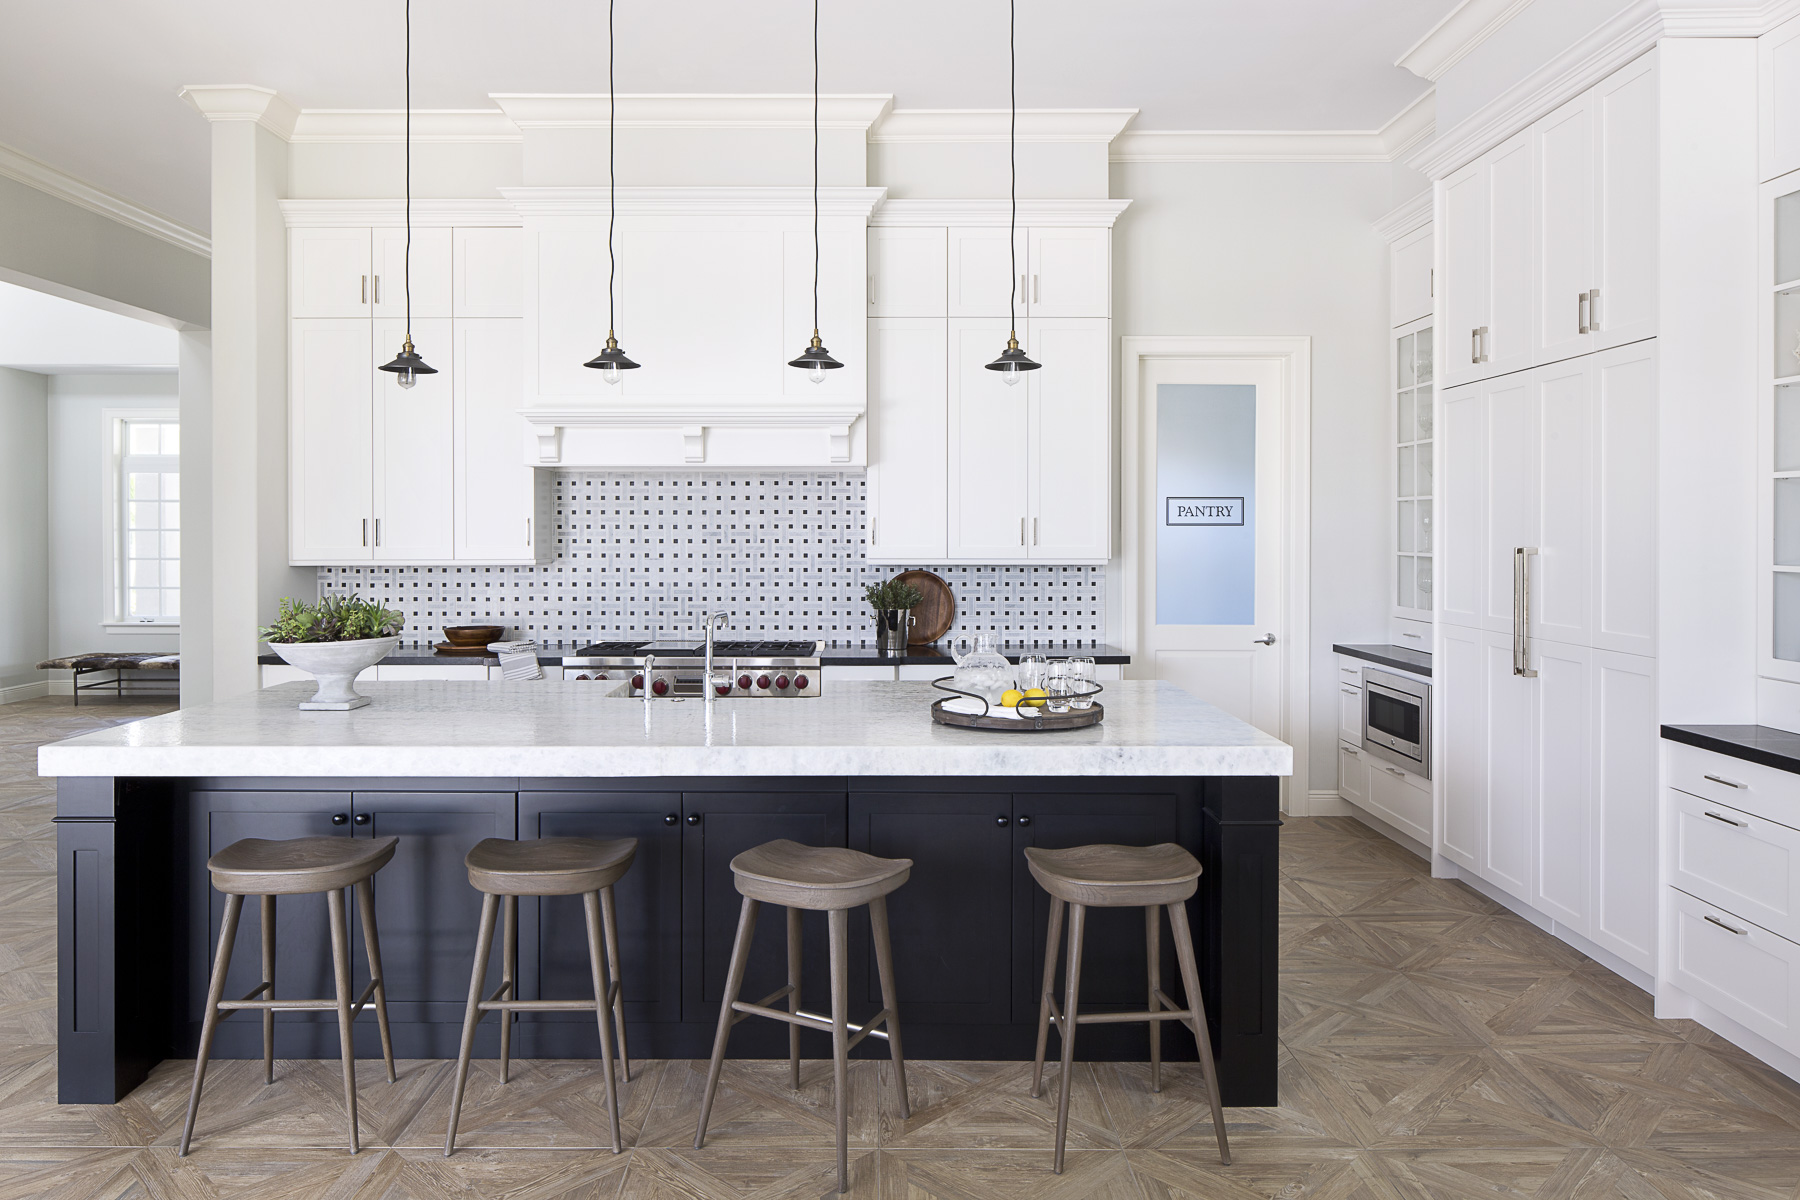 Krista Watterworth Interior Designer Florida Kitchen